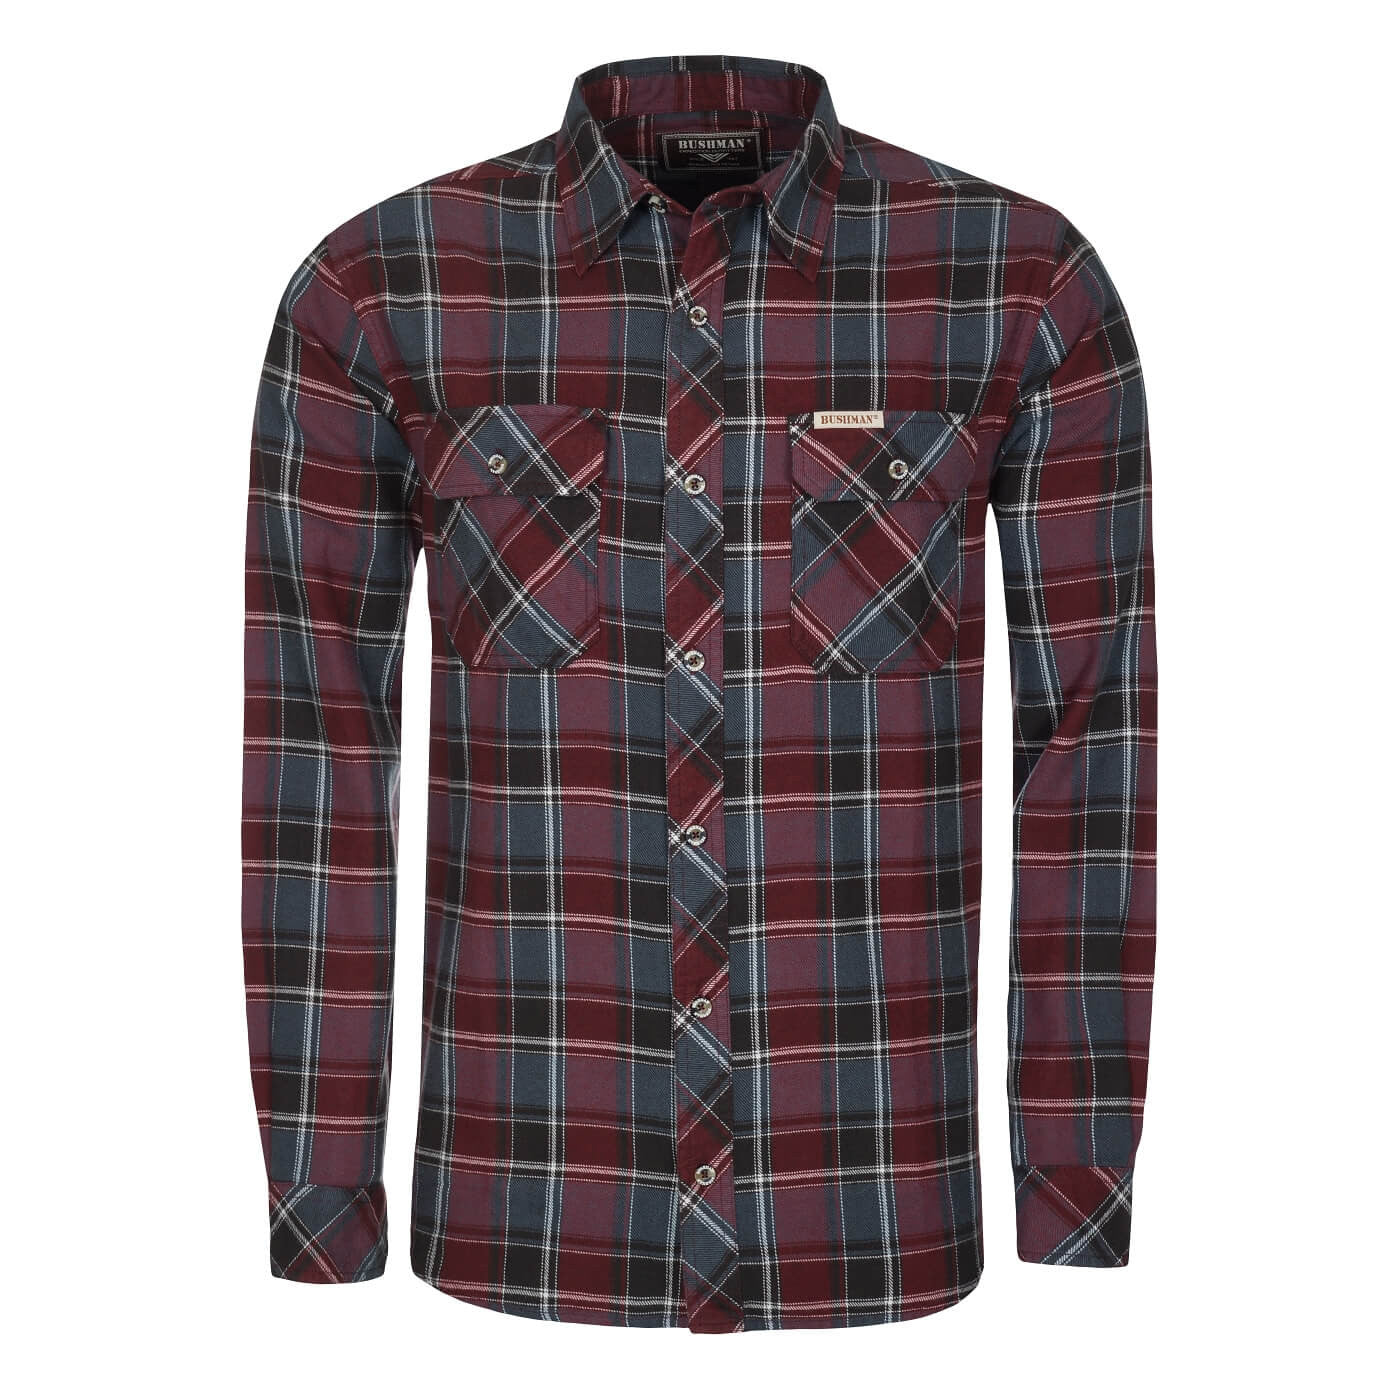 BUSHMANSHOP LANGLEY MEN'S PLAID RED GREY BLACK COTTON FLANNEL LONG SLEEVE SHIRT